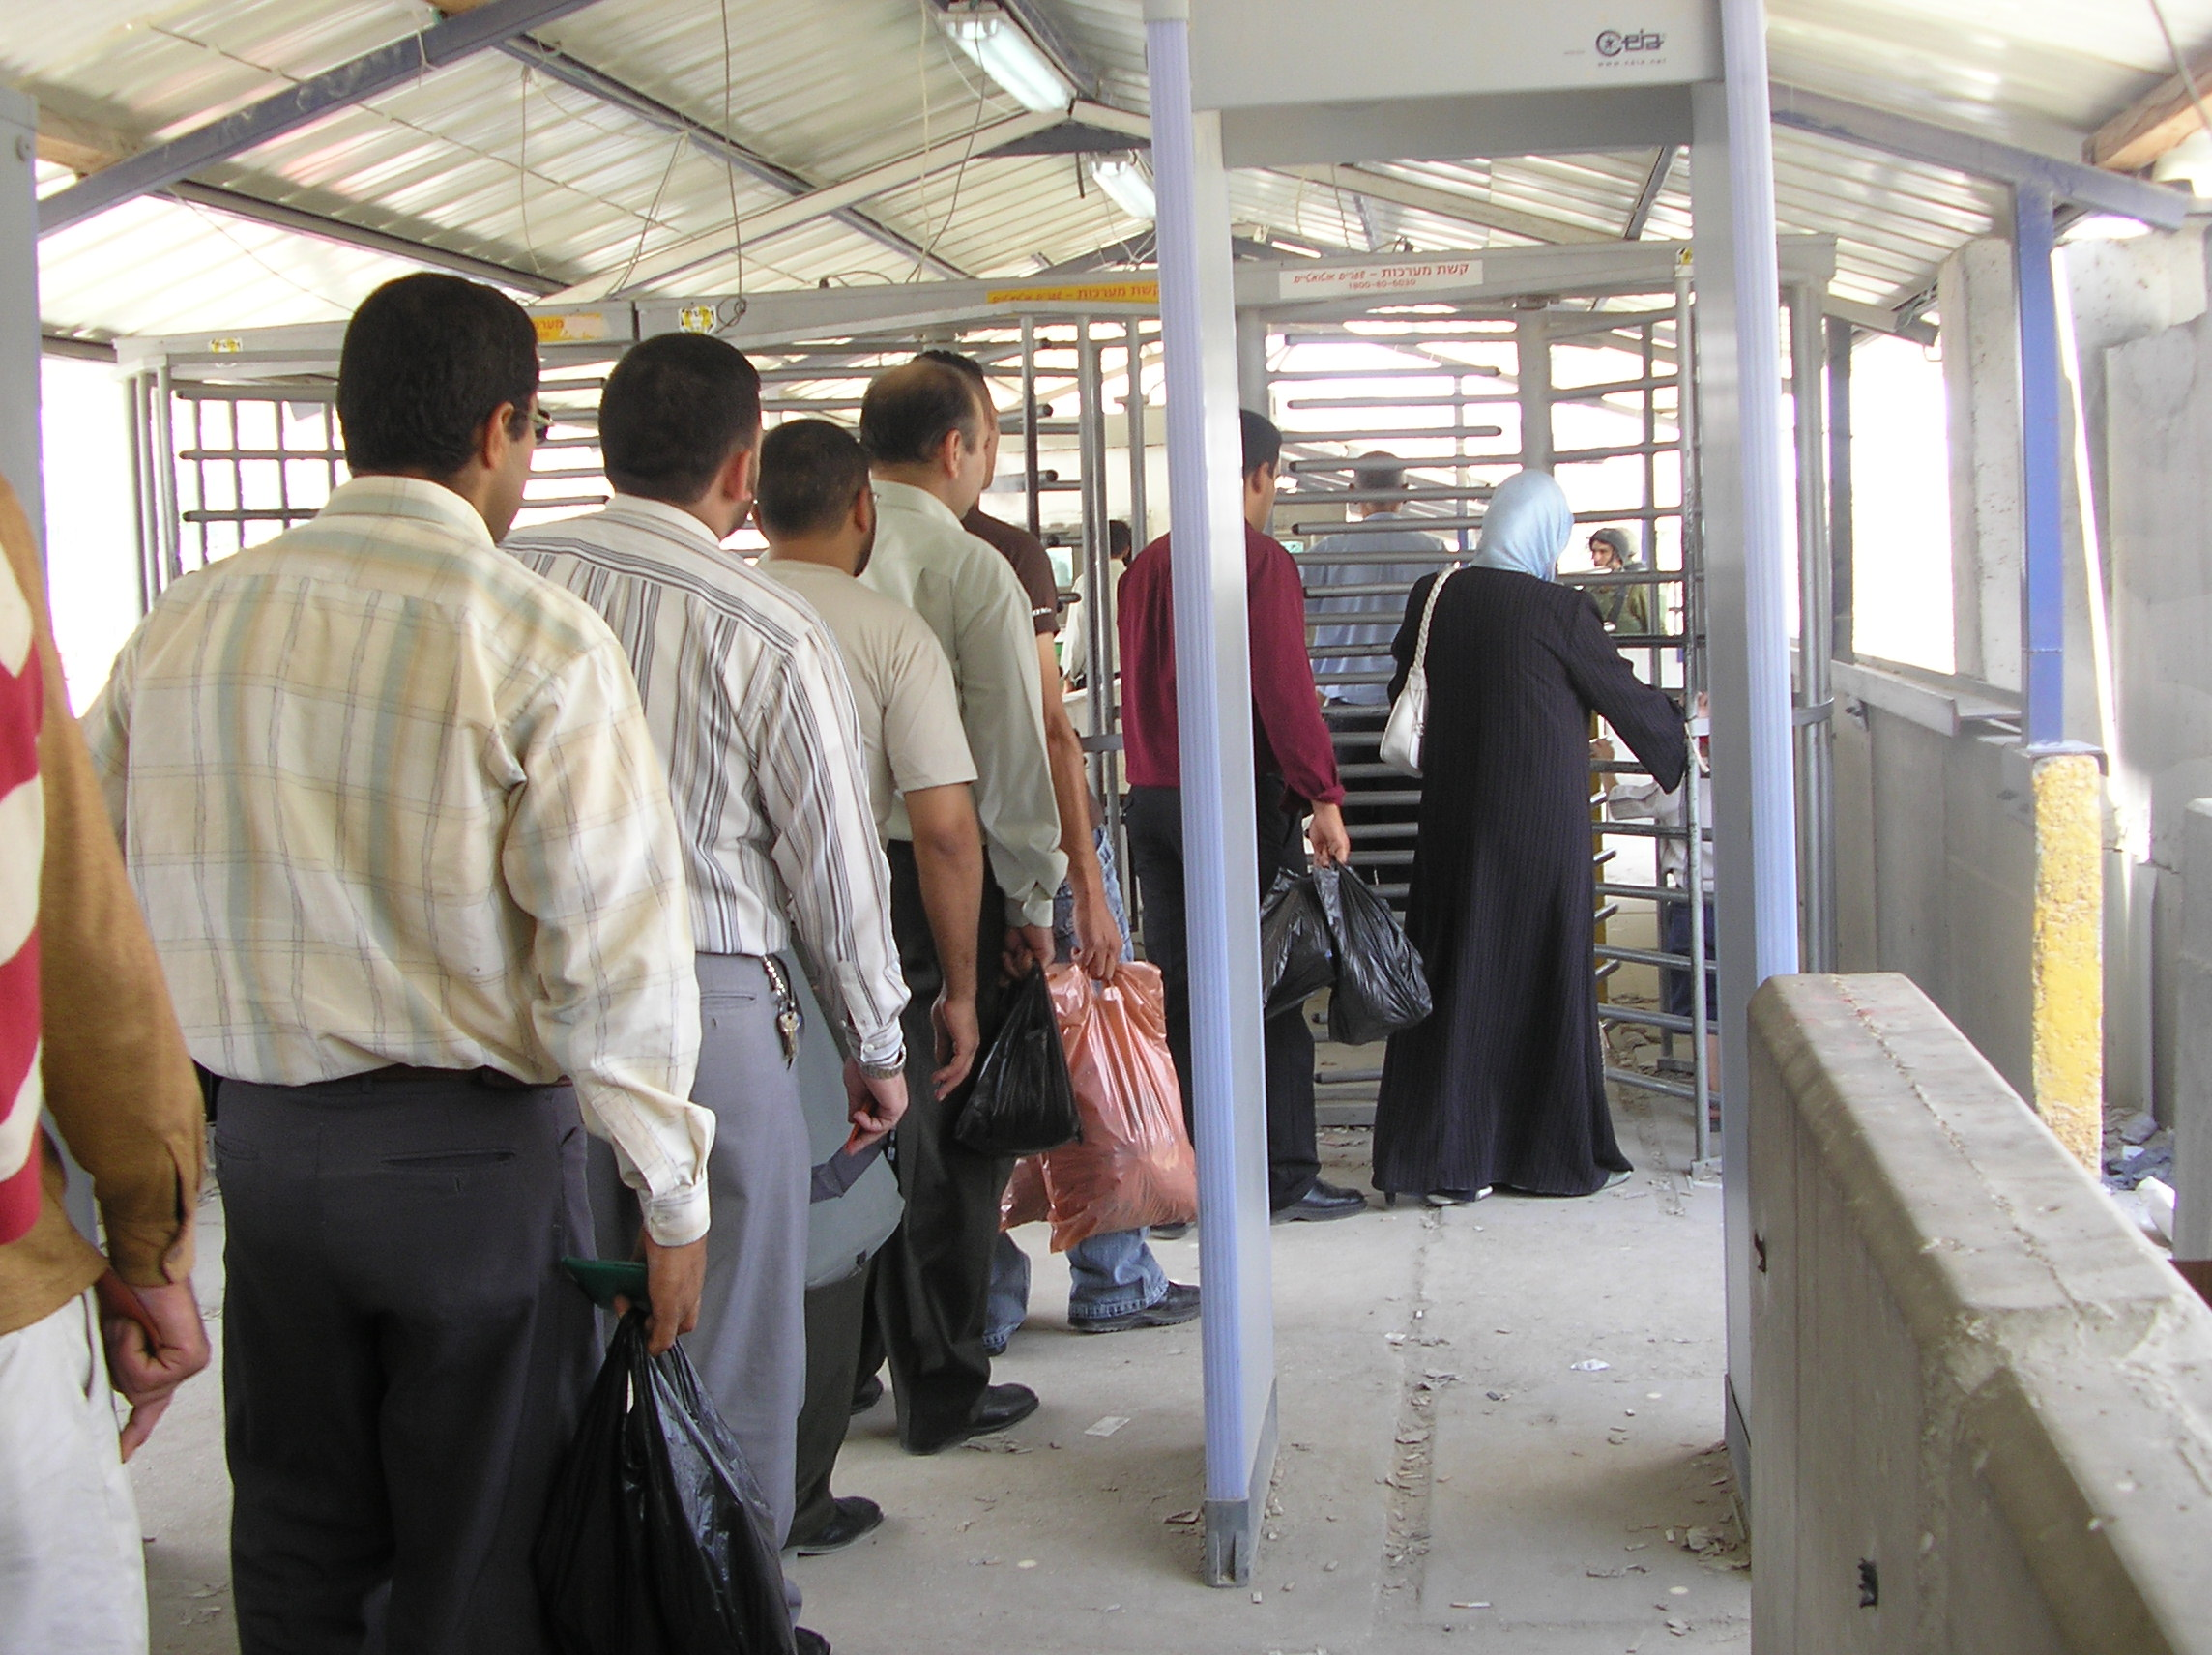 Palestinians queue at Beit Iba checkpoint north of Nablus.